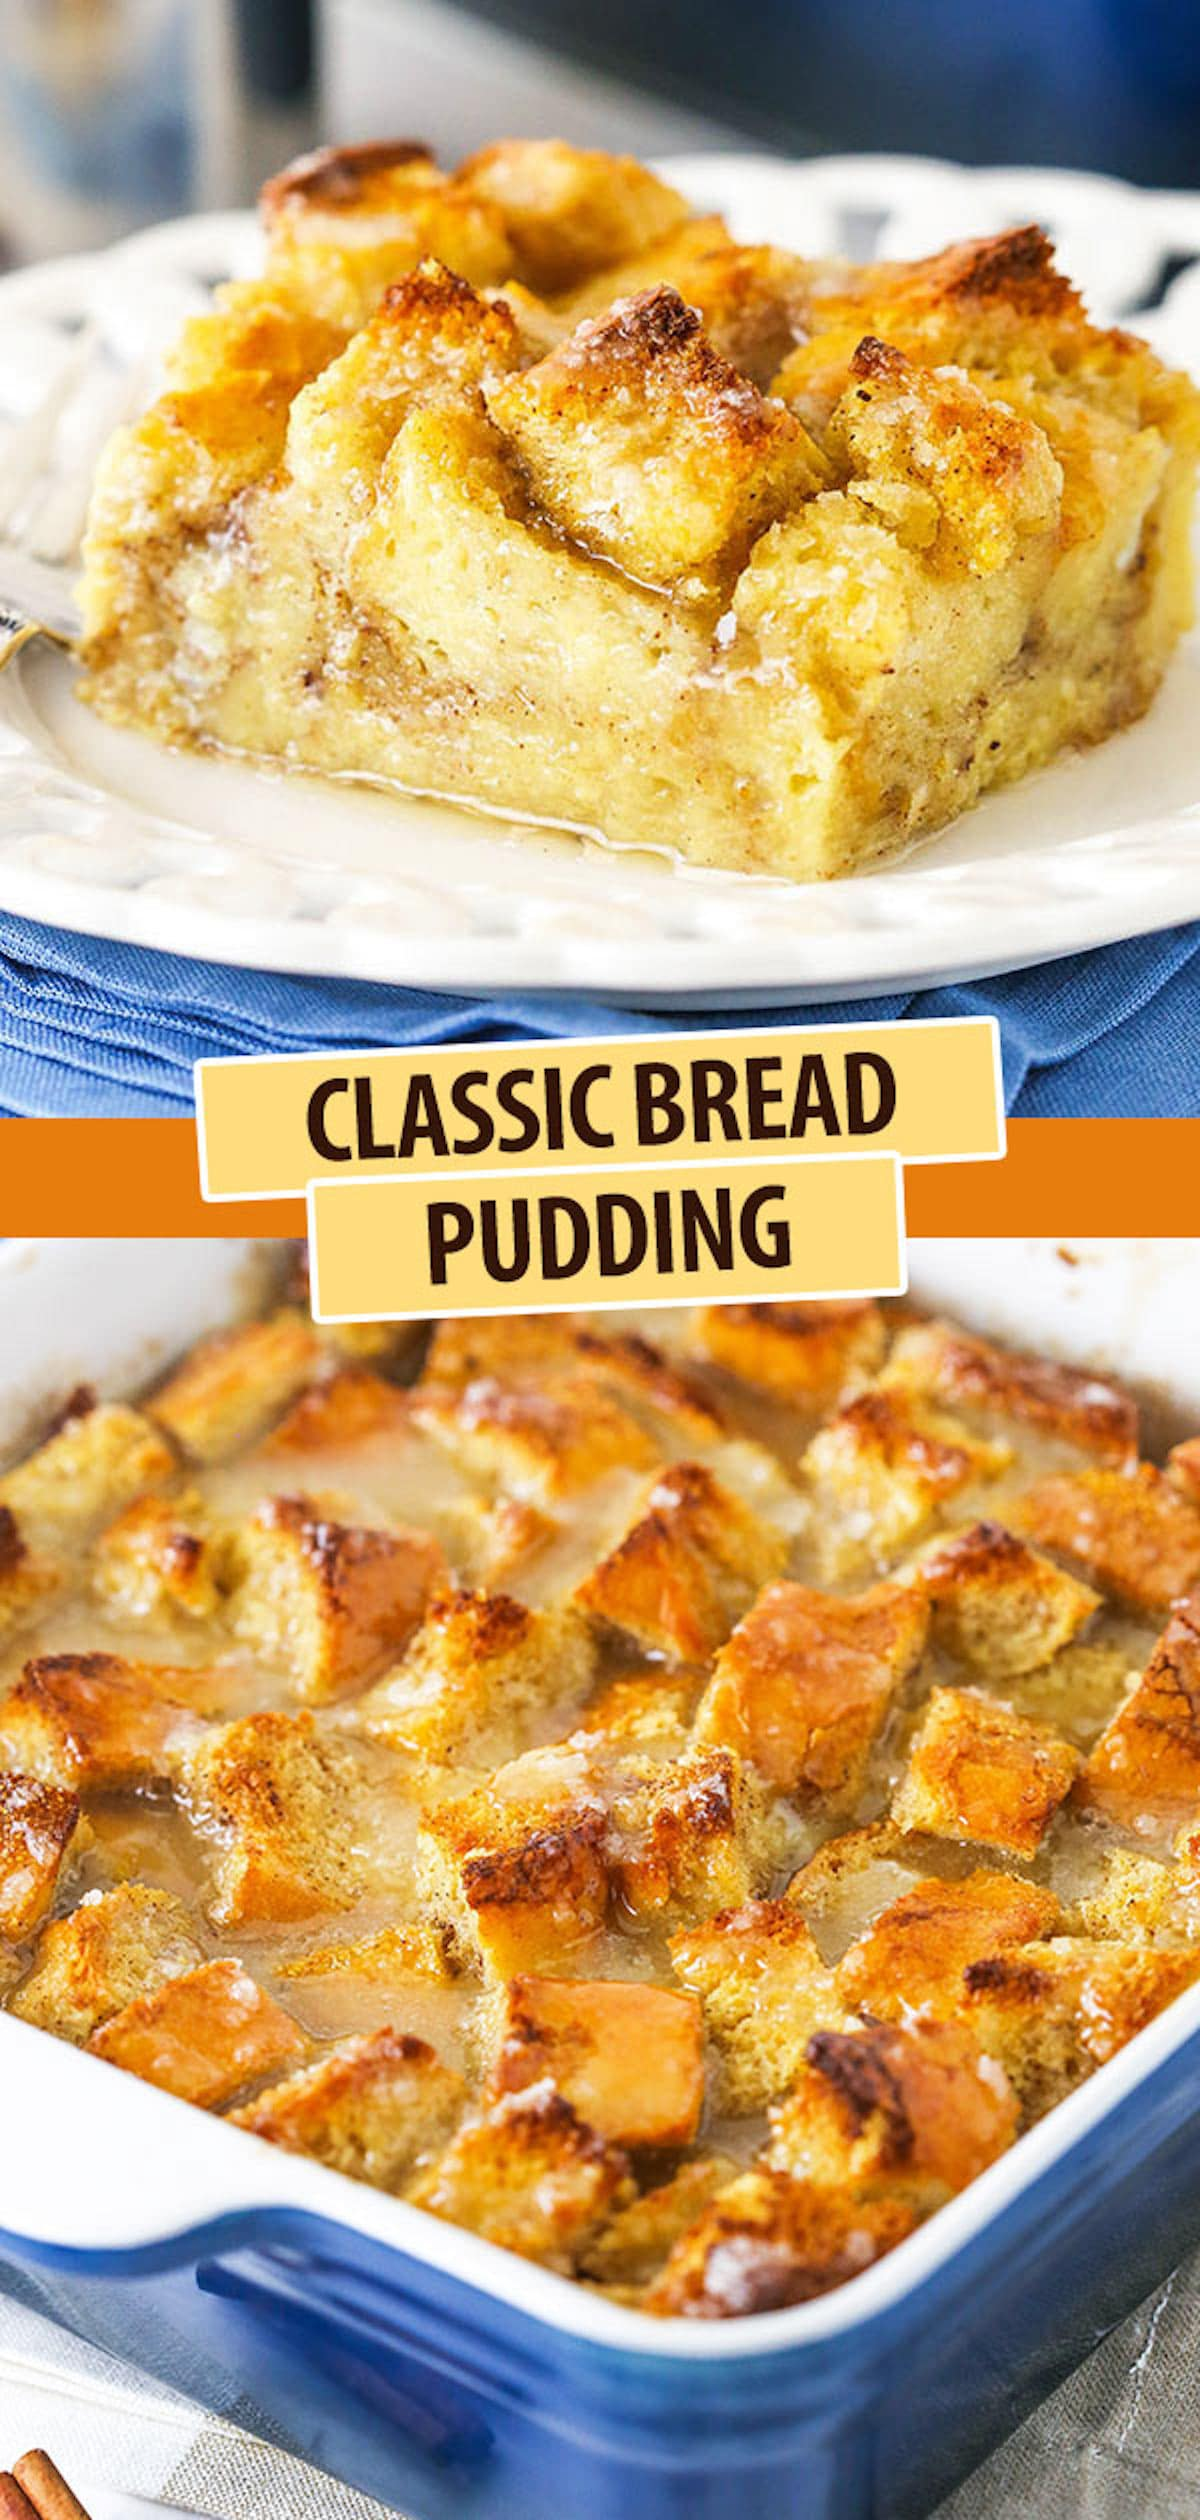 A Slice of Bread Pudding on a Plate Over a Pan Full of Bread Pudding